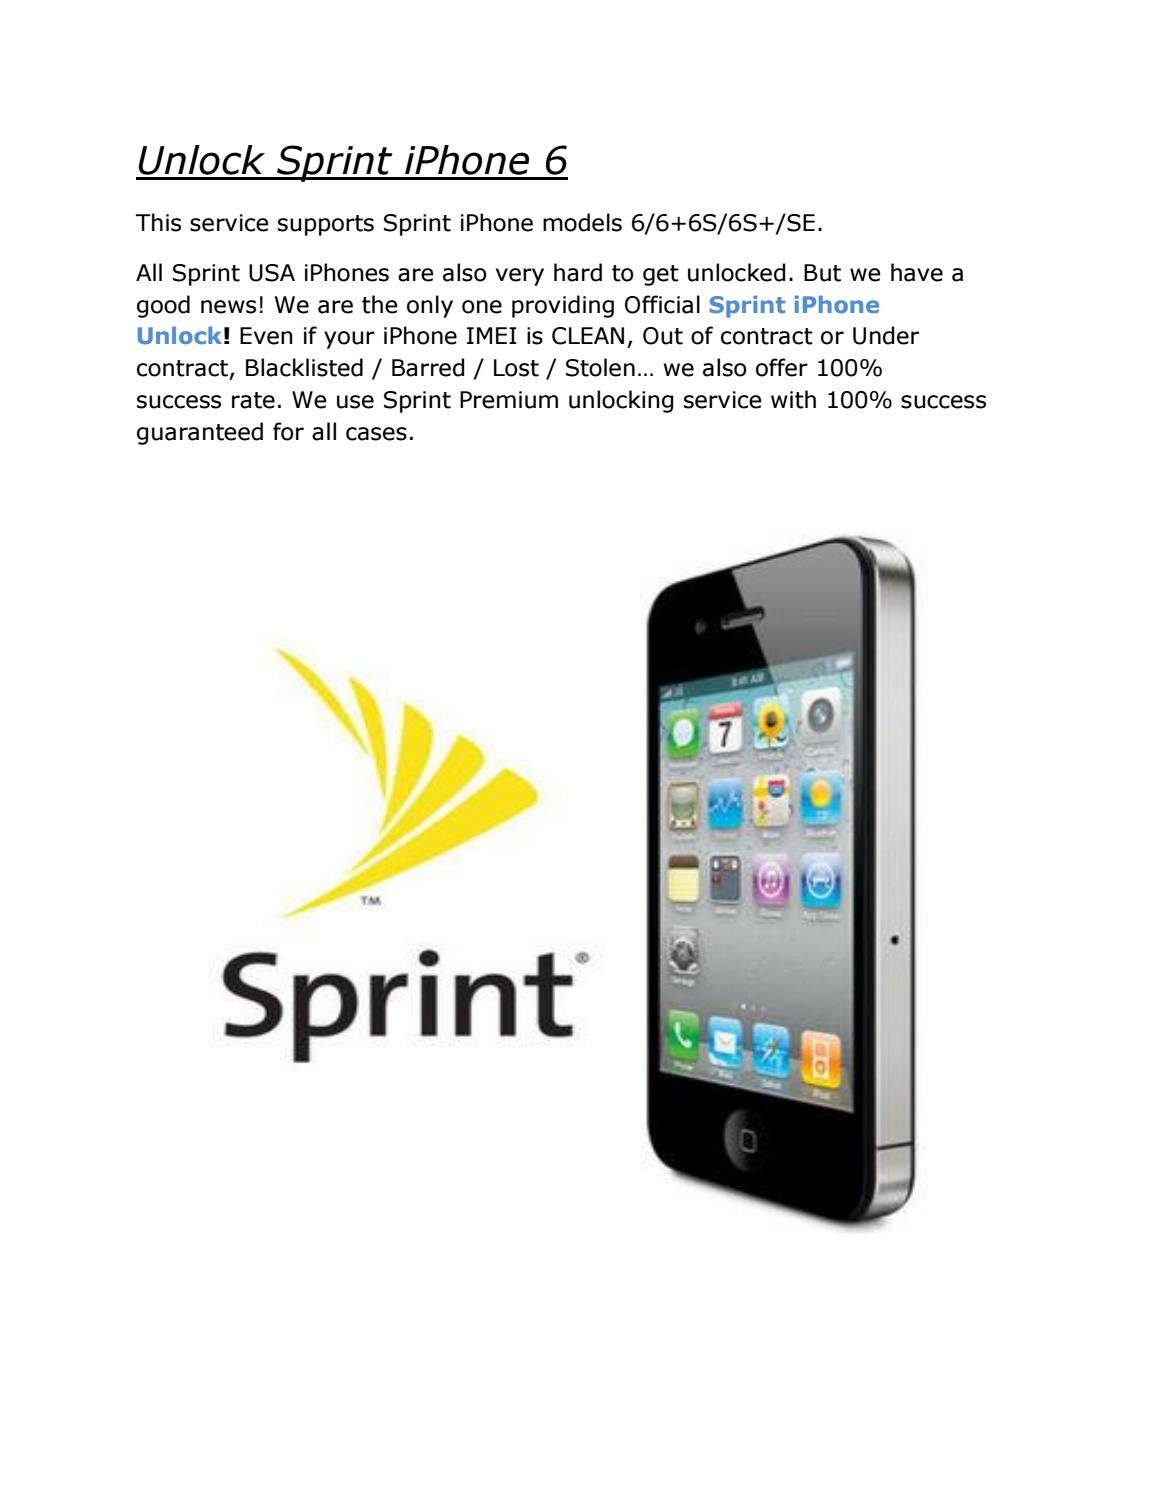 Unlock sprint iphone 6 pdf by dayoneunlocks - issuu